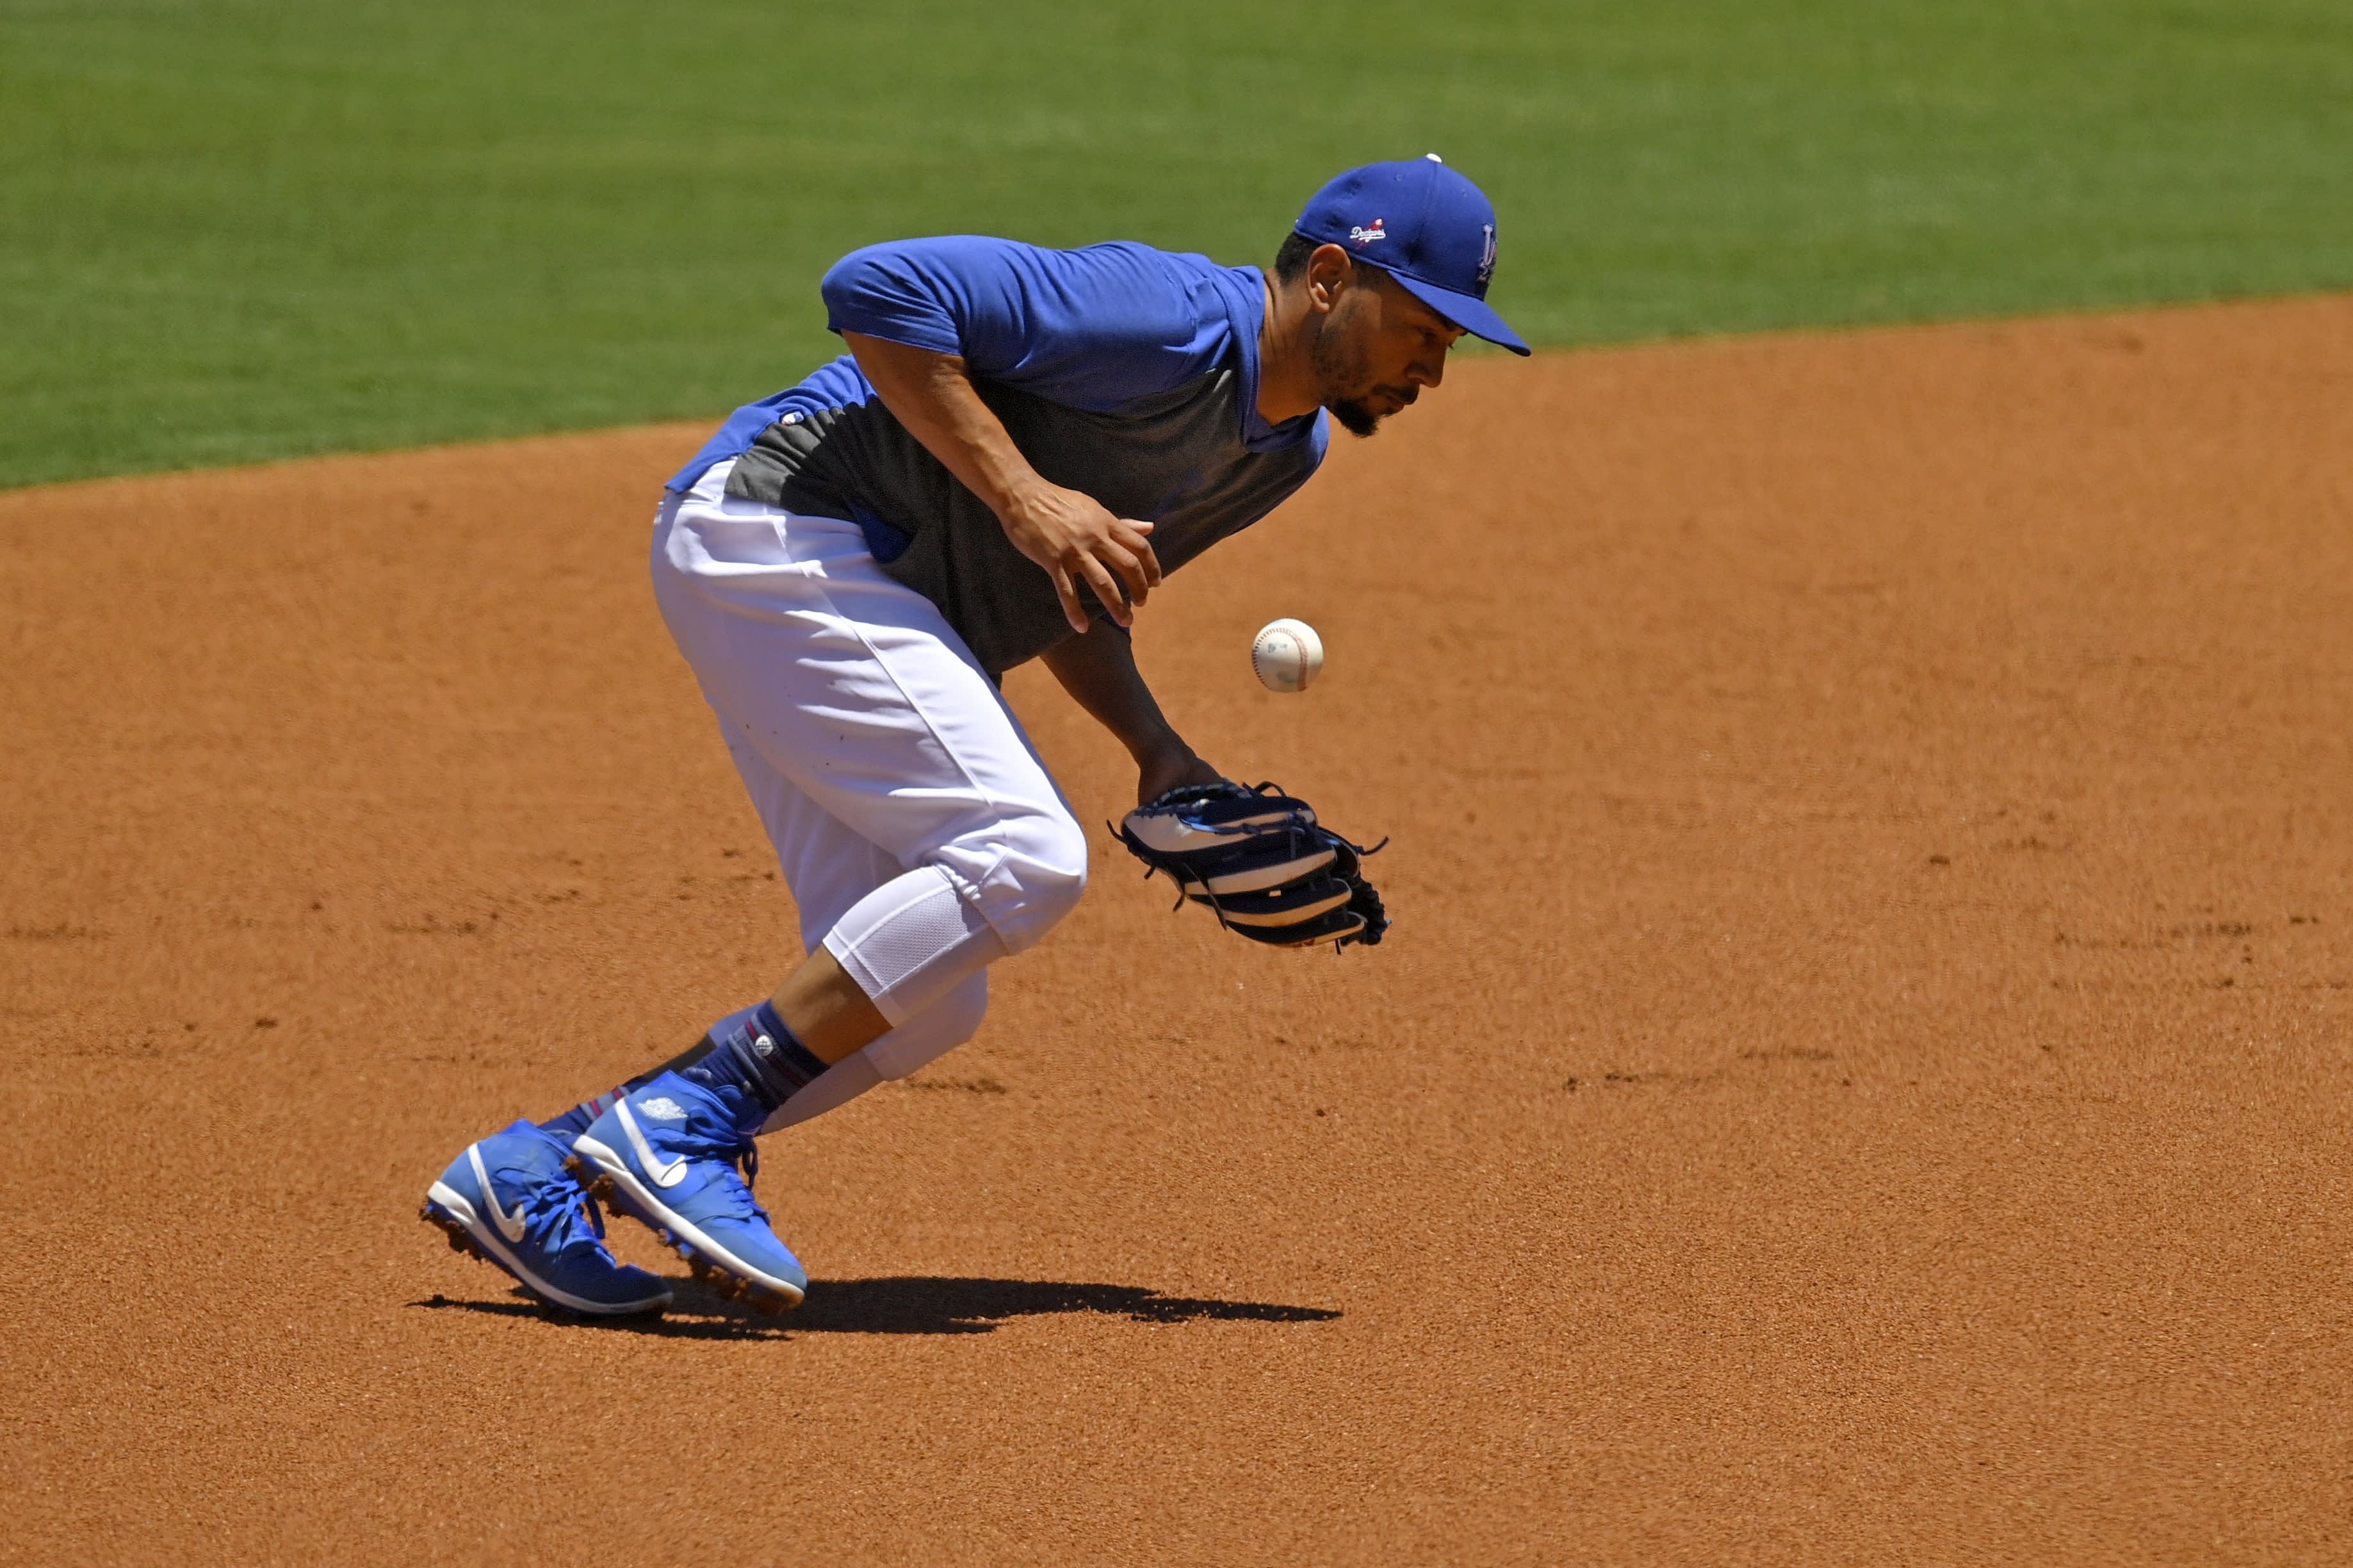 Los Angeles Dodgers right fielder Mookie Betts fields ground balls during the restart of baseball spring training Saturday, July 4, 2020, in Los Angeles. (AP Photo/Mark J. Terrill)